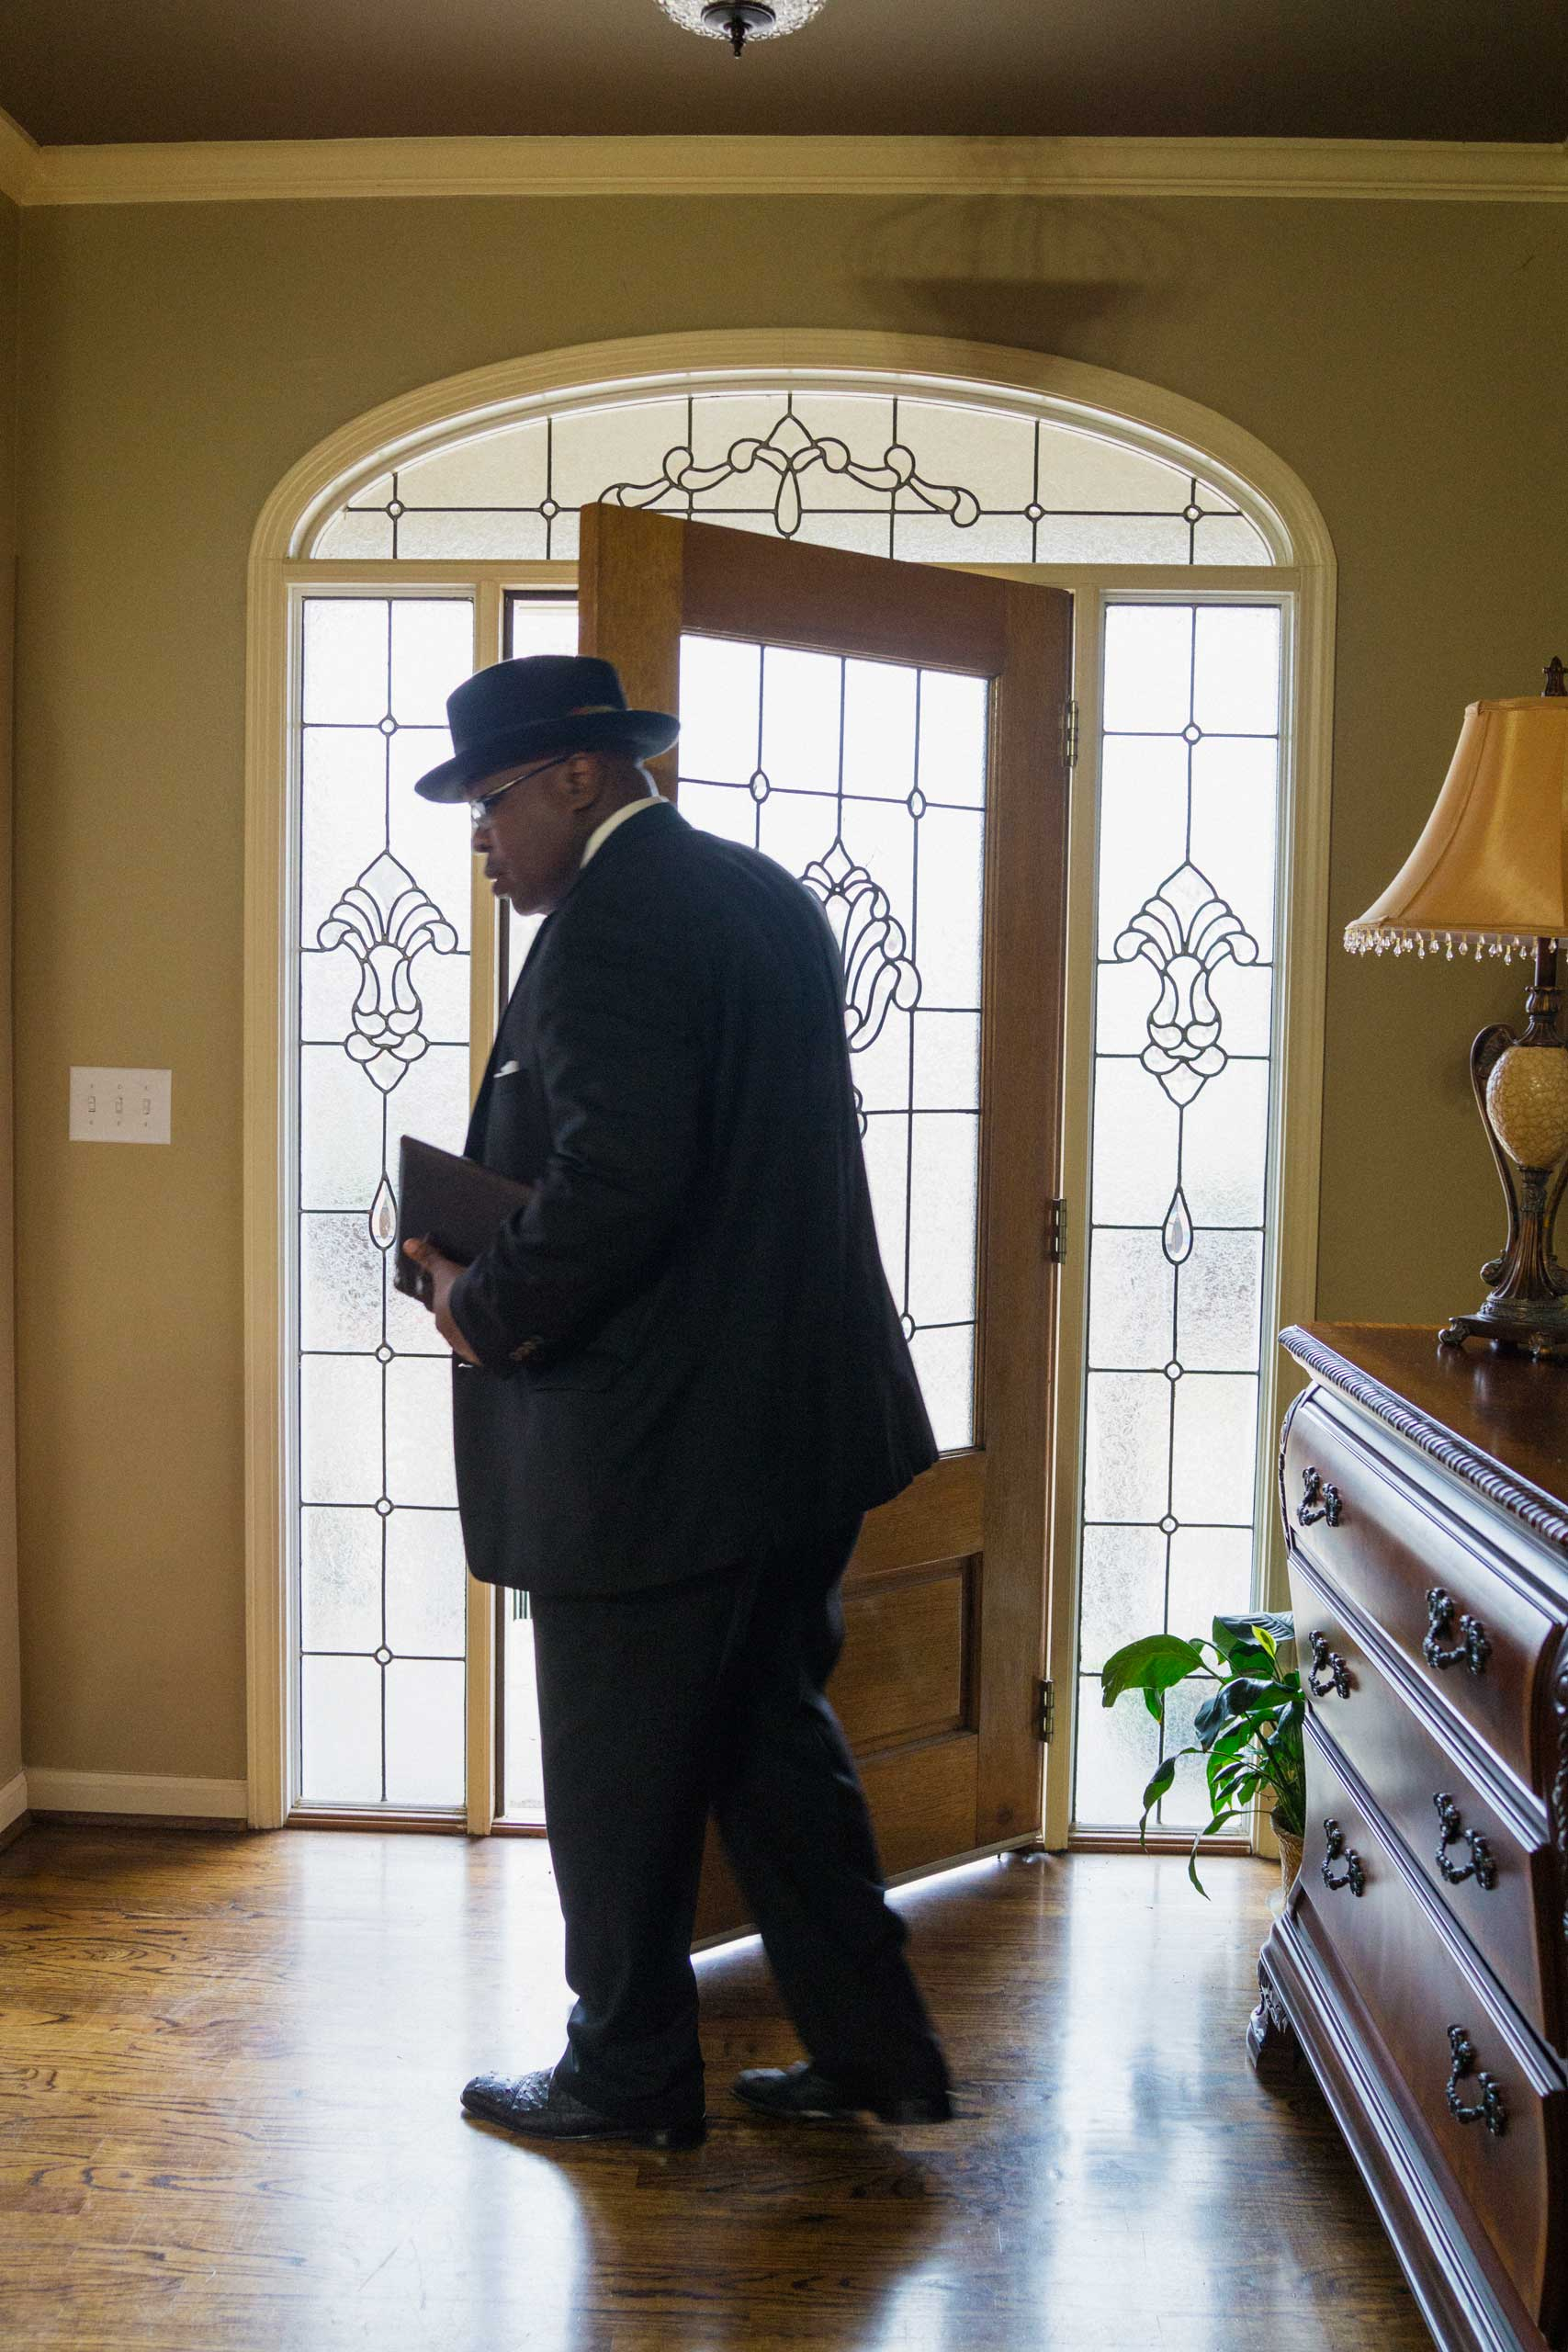 Pete Garrett prepares to leave for services at 16th Street Baptist Church in Birmingham, Ala. on March 22, 2015.